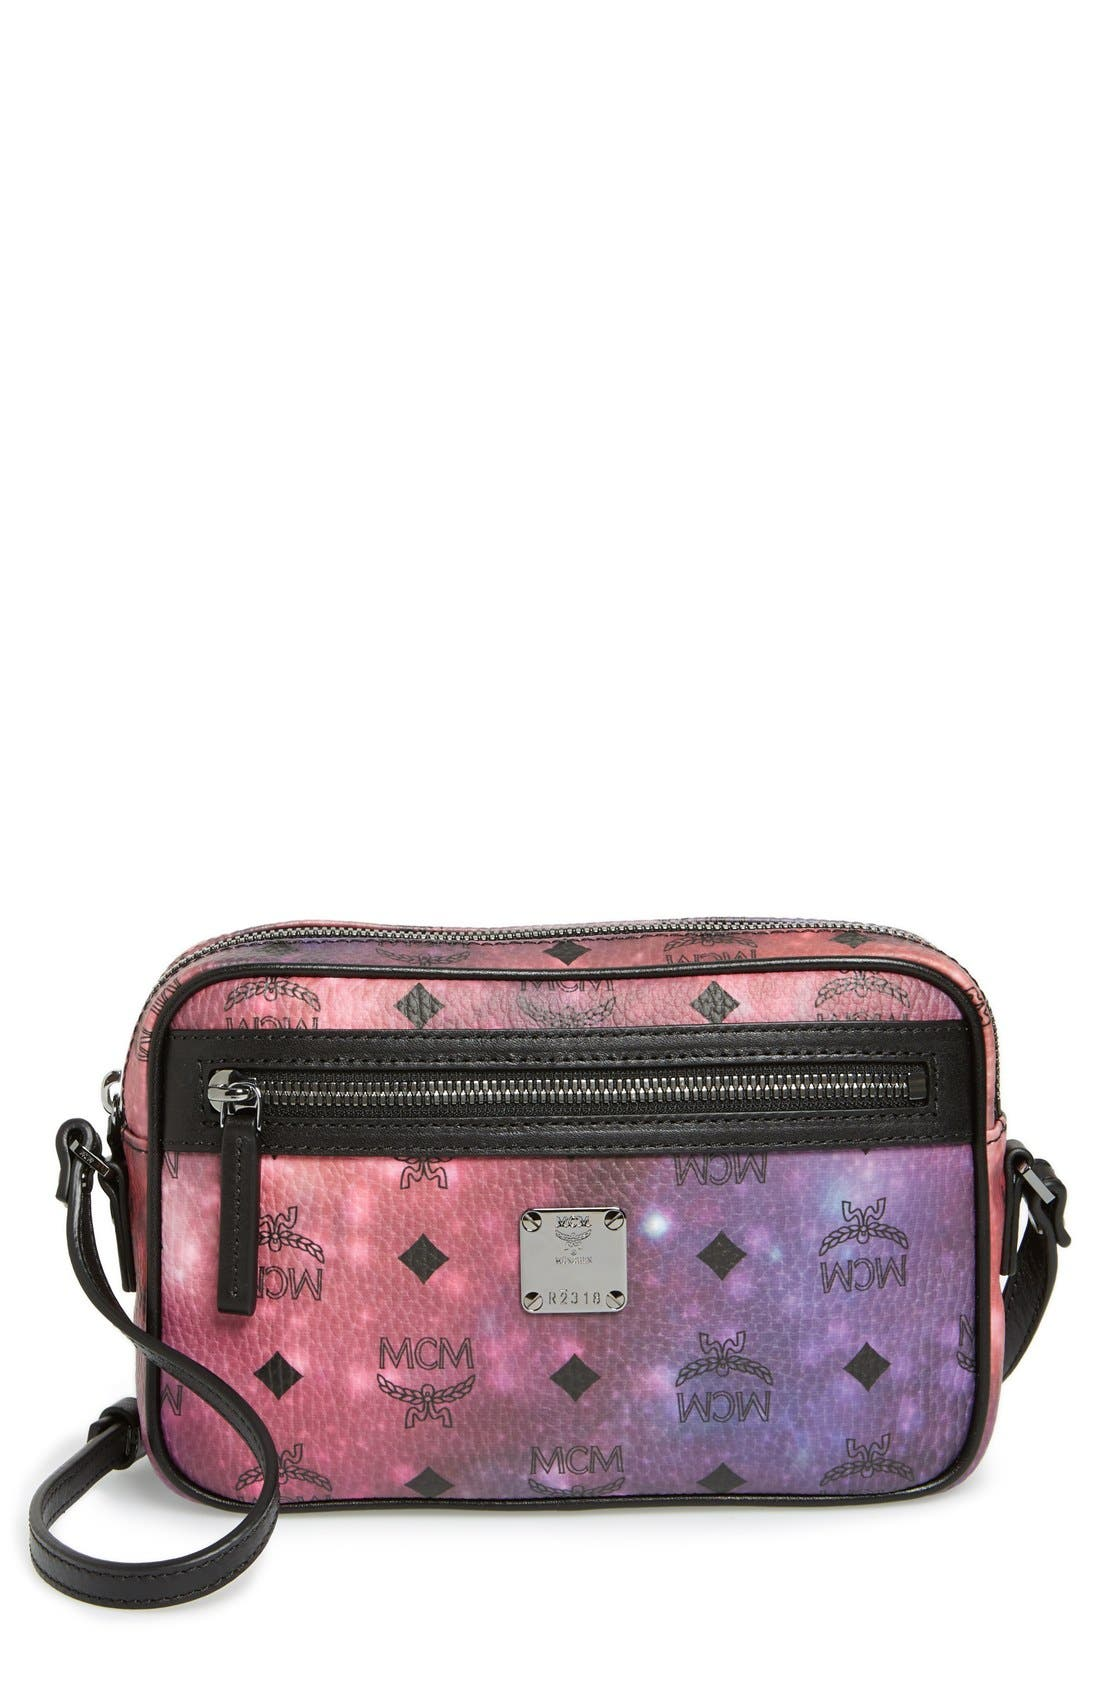 Alternate Image 1 Selected - MCM 'Galaxy Series' Crossbody Bag